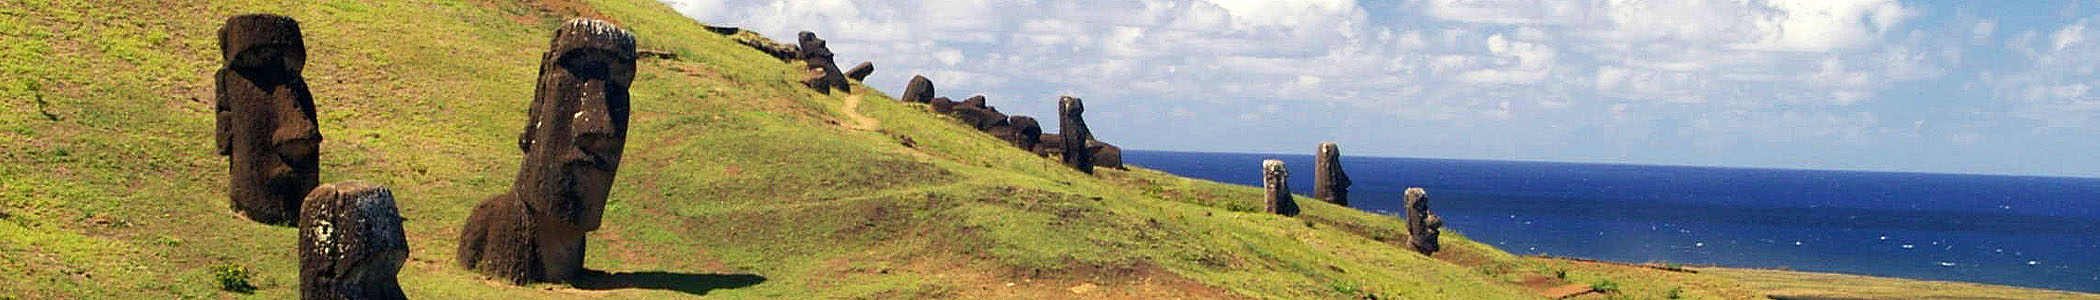 Easter Island – Travel guide at Wikivoyage